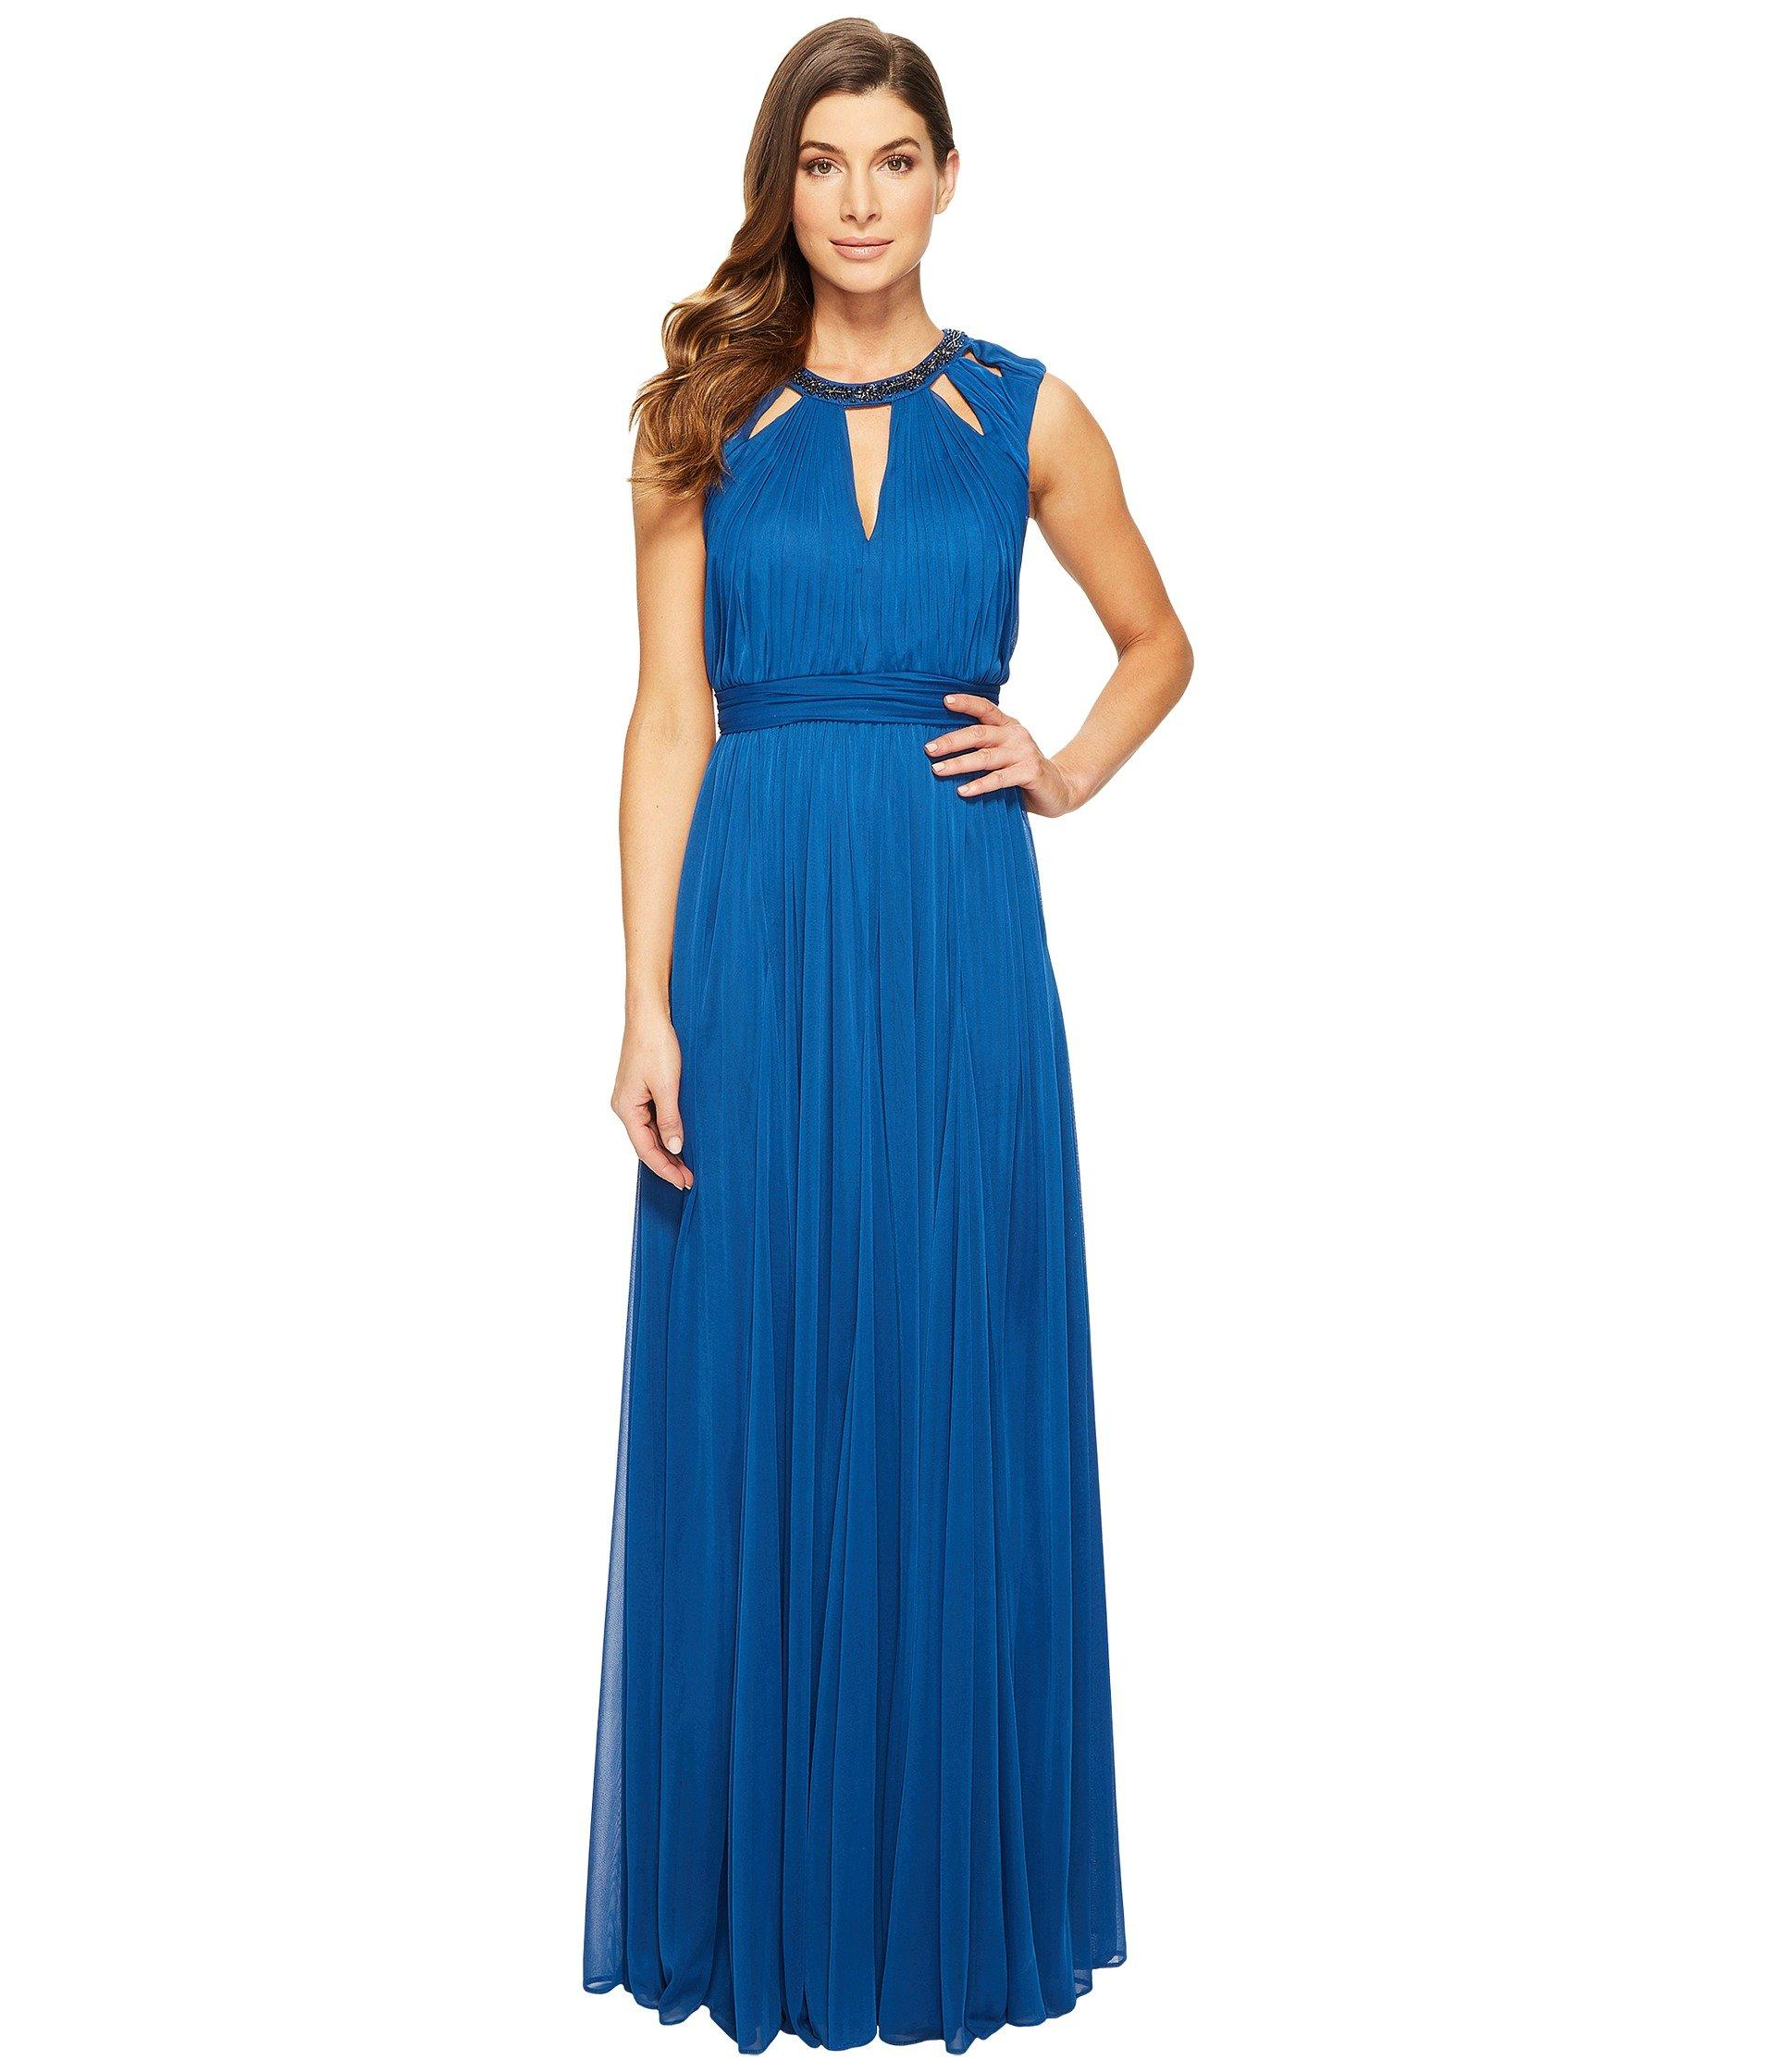 4949cb9ec41 Adrianna Papell Shirred Stretch Tulle Dress With Beaded Necklace ...